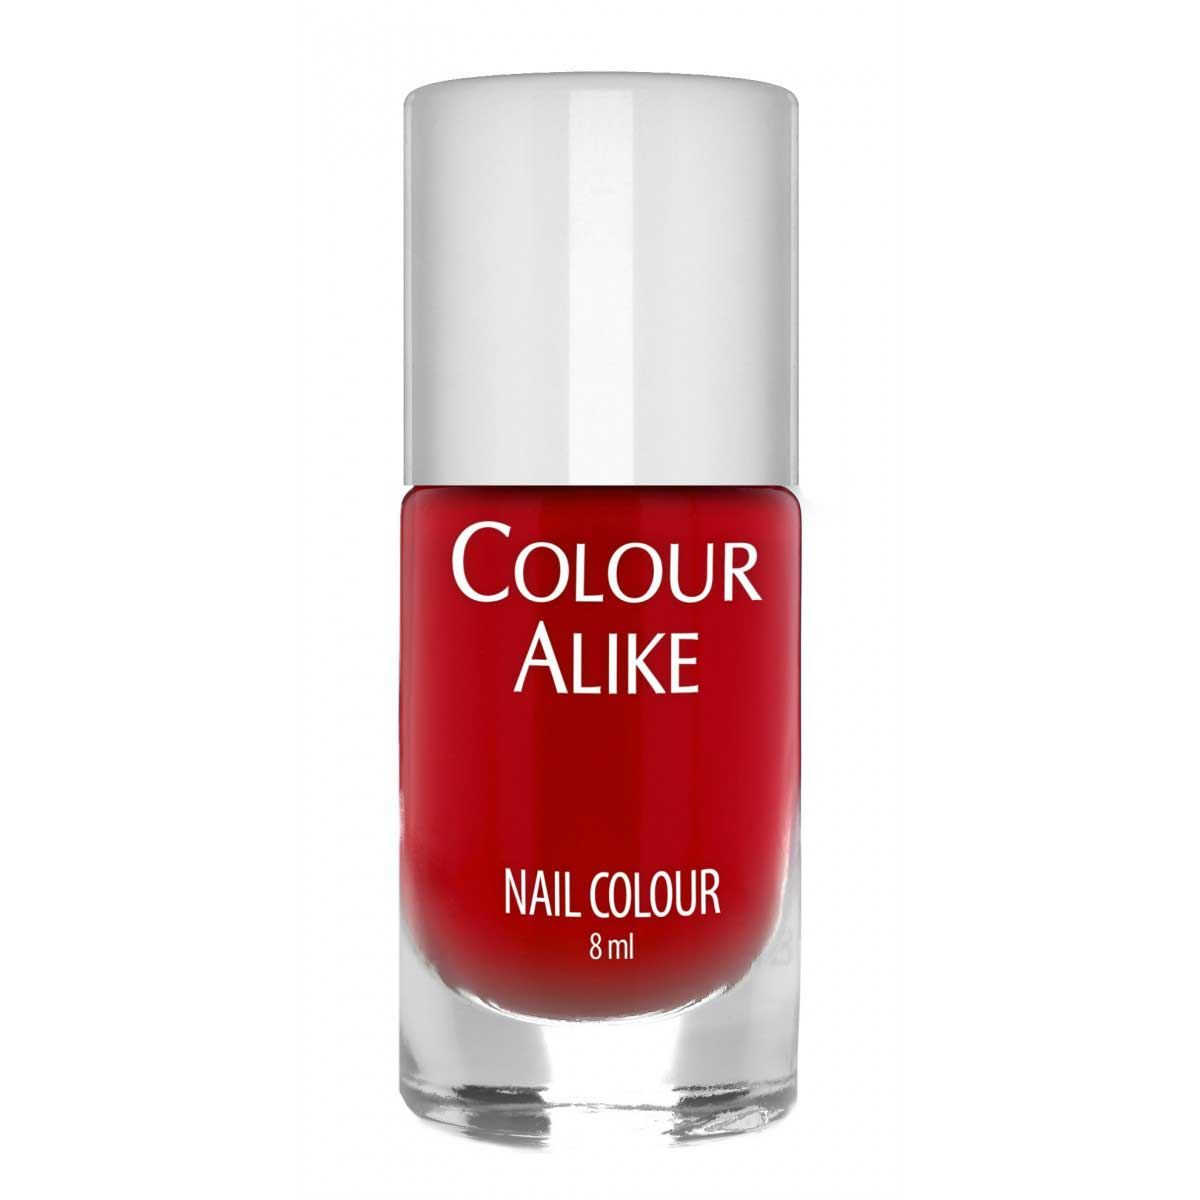 Colour Alike Ruby Red esmalte para estampar en las uñas